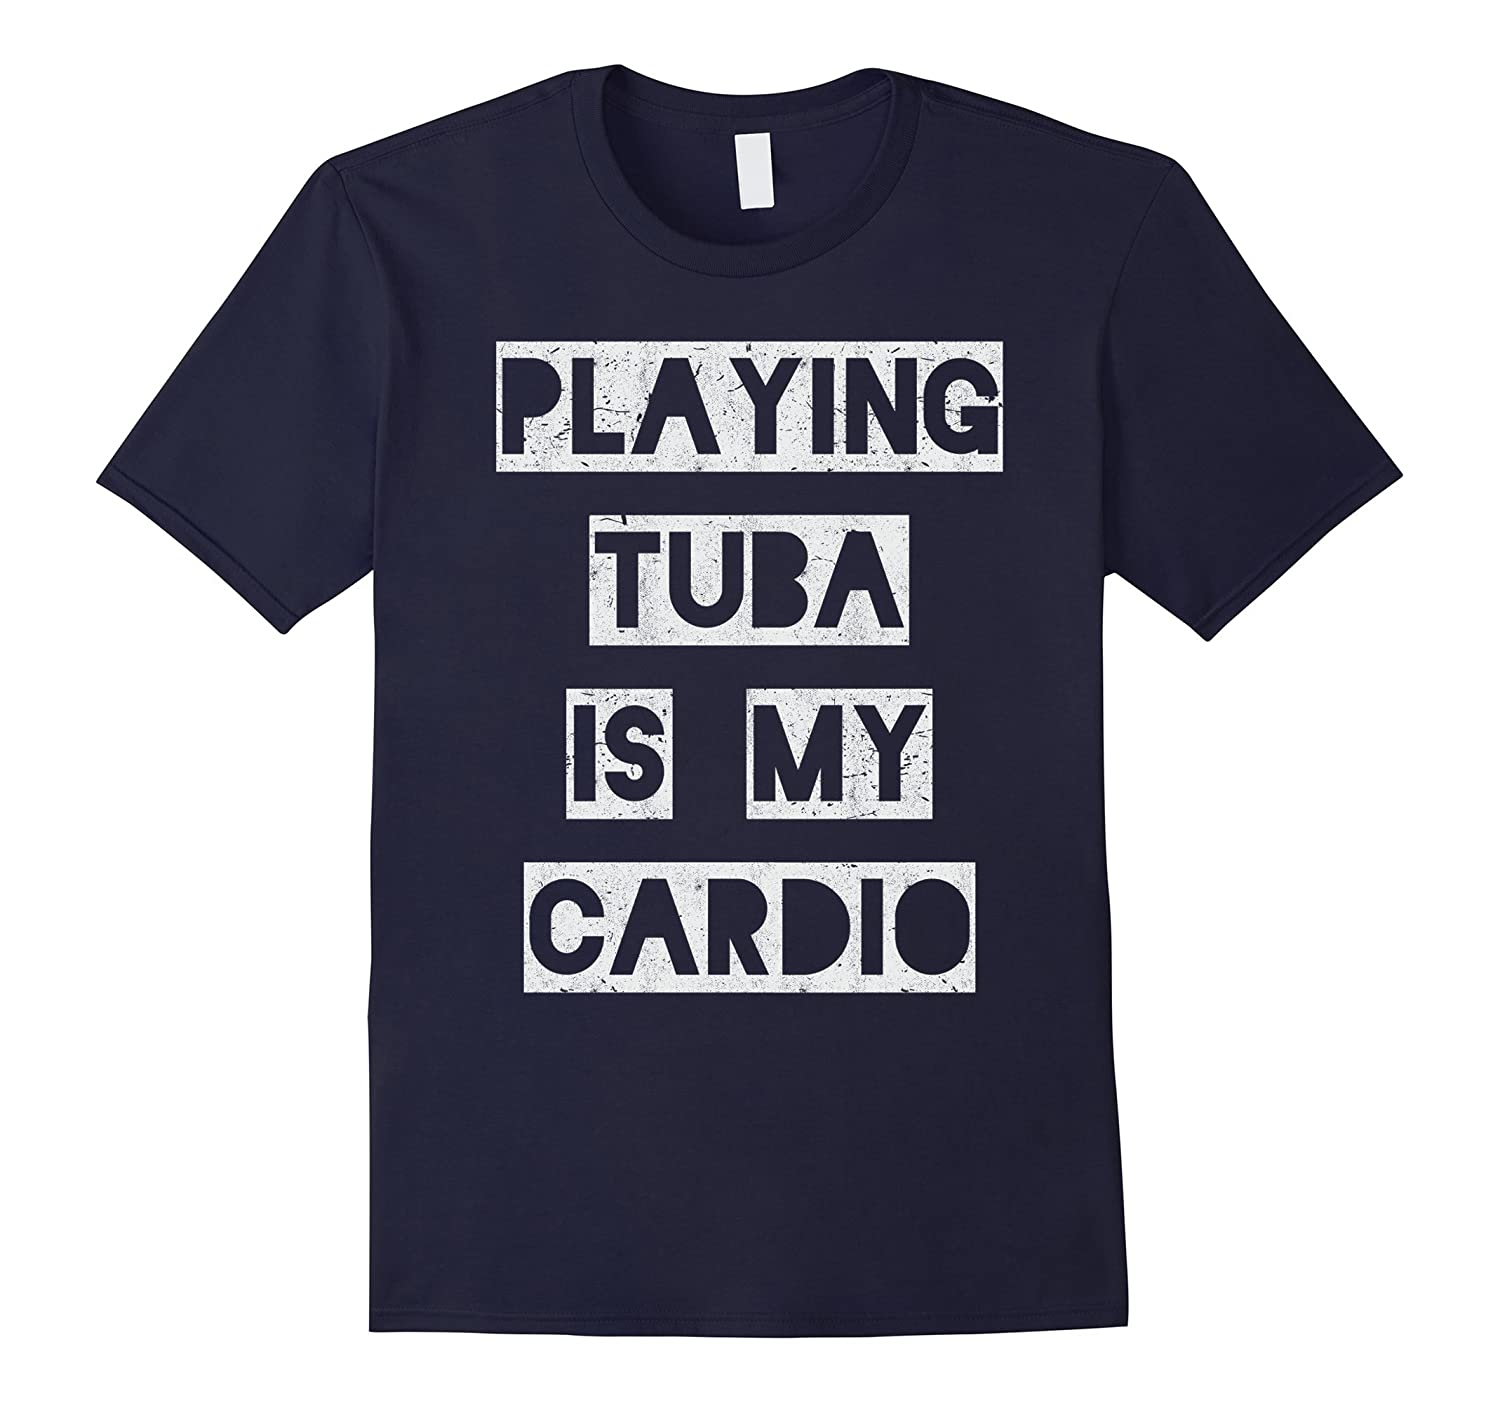 Playing Tuba is my Cardio T-Shirt  band musician